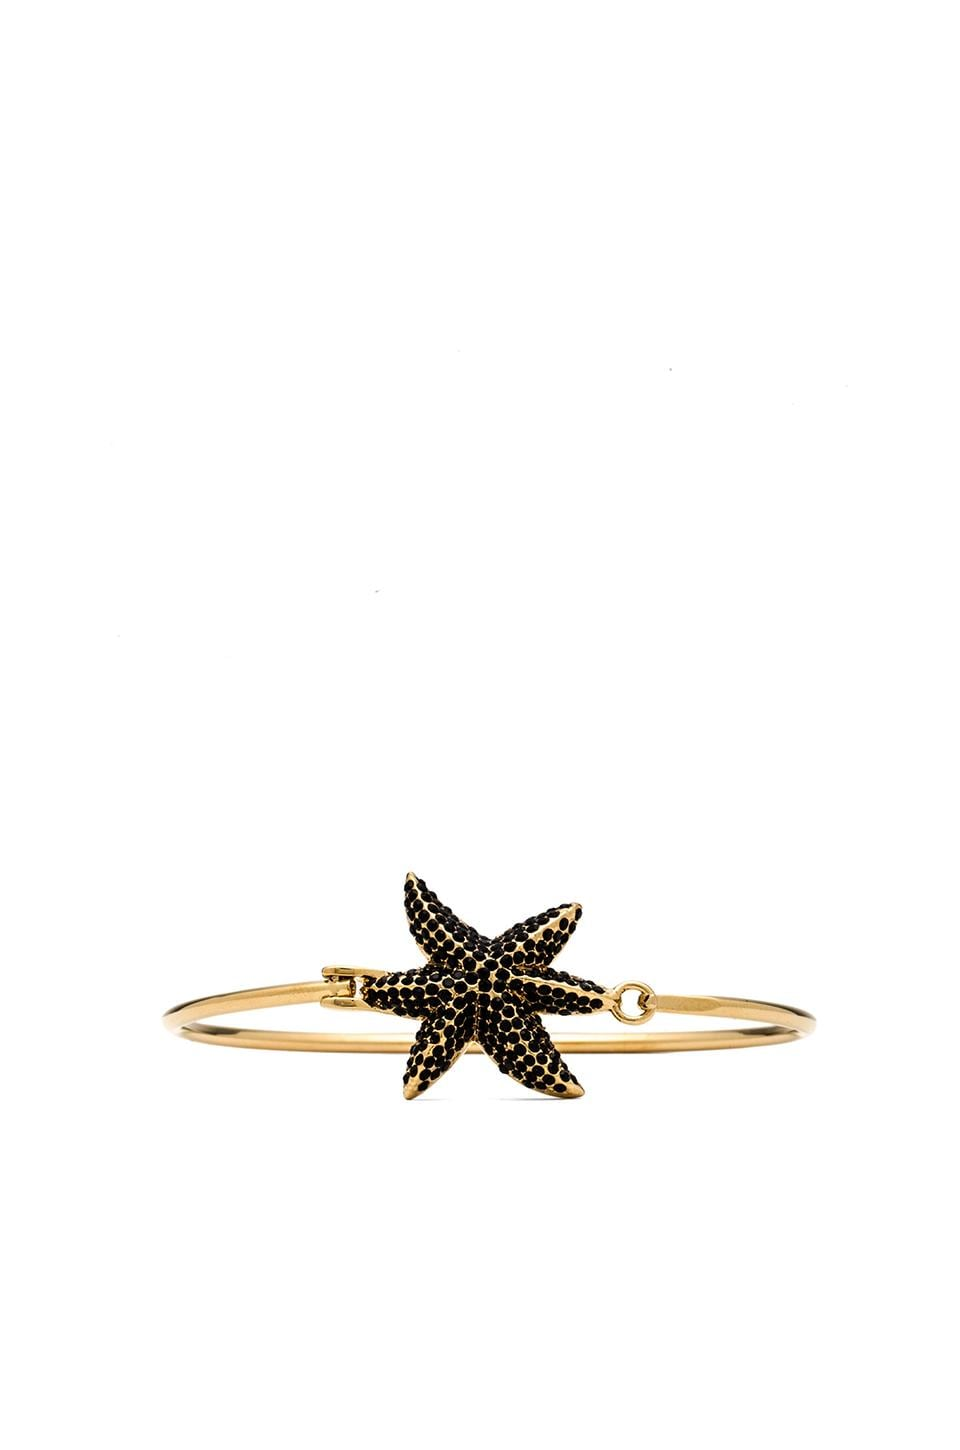 Marc by Marc Jacobs Read My Palmz Pave Palm Hinge Bangle in Black & Oro